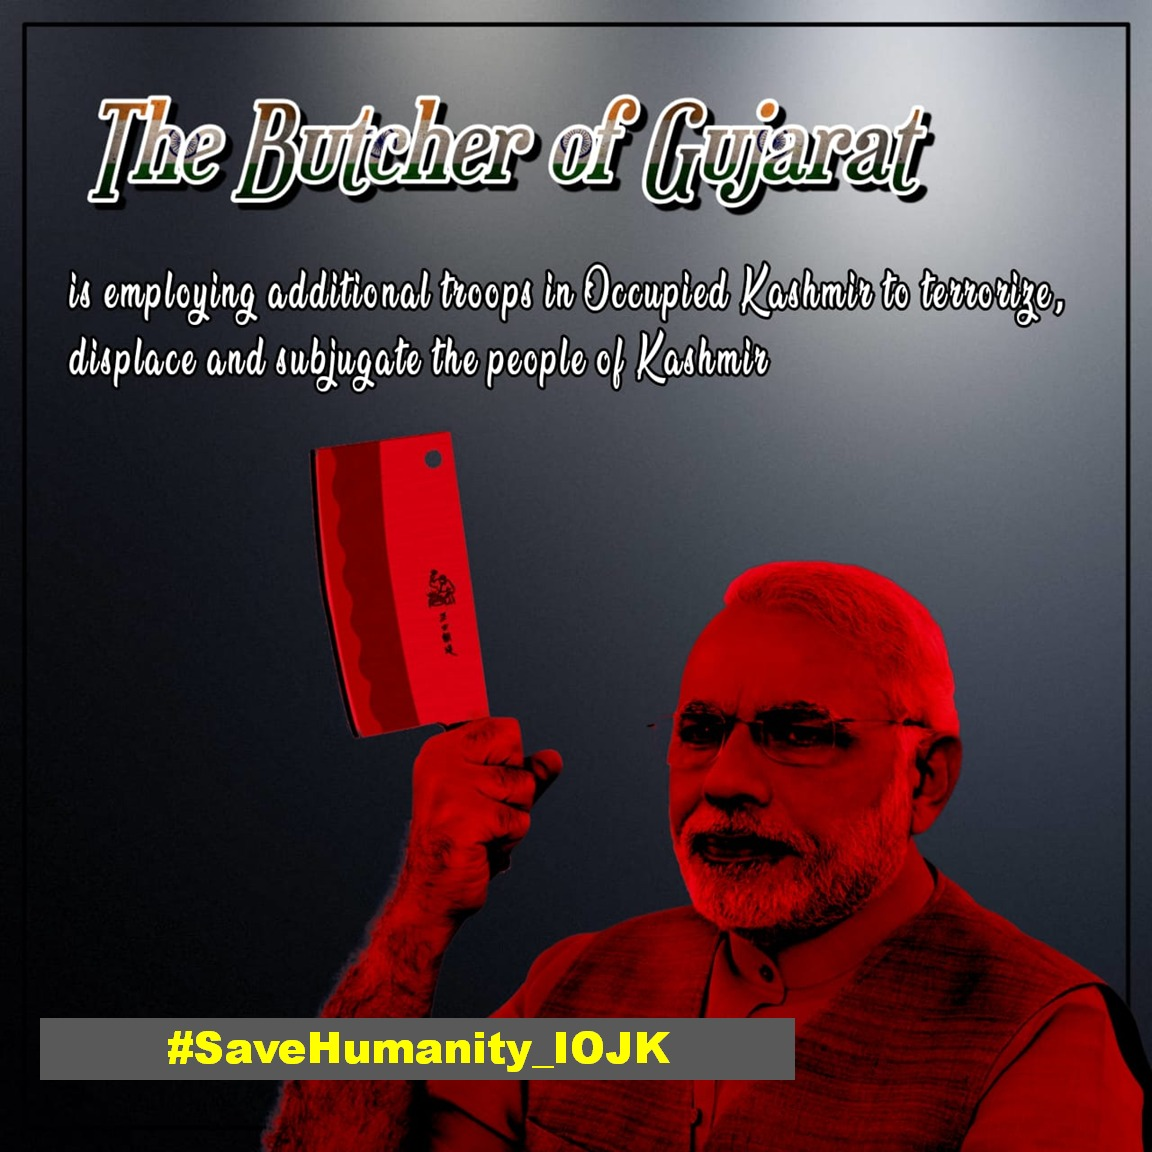 The Indian parliament passed The Jammu and Kashmir Reorganisation Act-2019 whereby the Indian-held Kashmir was bifurcated into two Union Territories (Jammu & Kashmir, and Ladakh), to be governed directly by the Central Government of India.  #SaveHumanity_IOJK @Team4Pakistanpic.twitter.com/1PClBB1oih